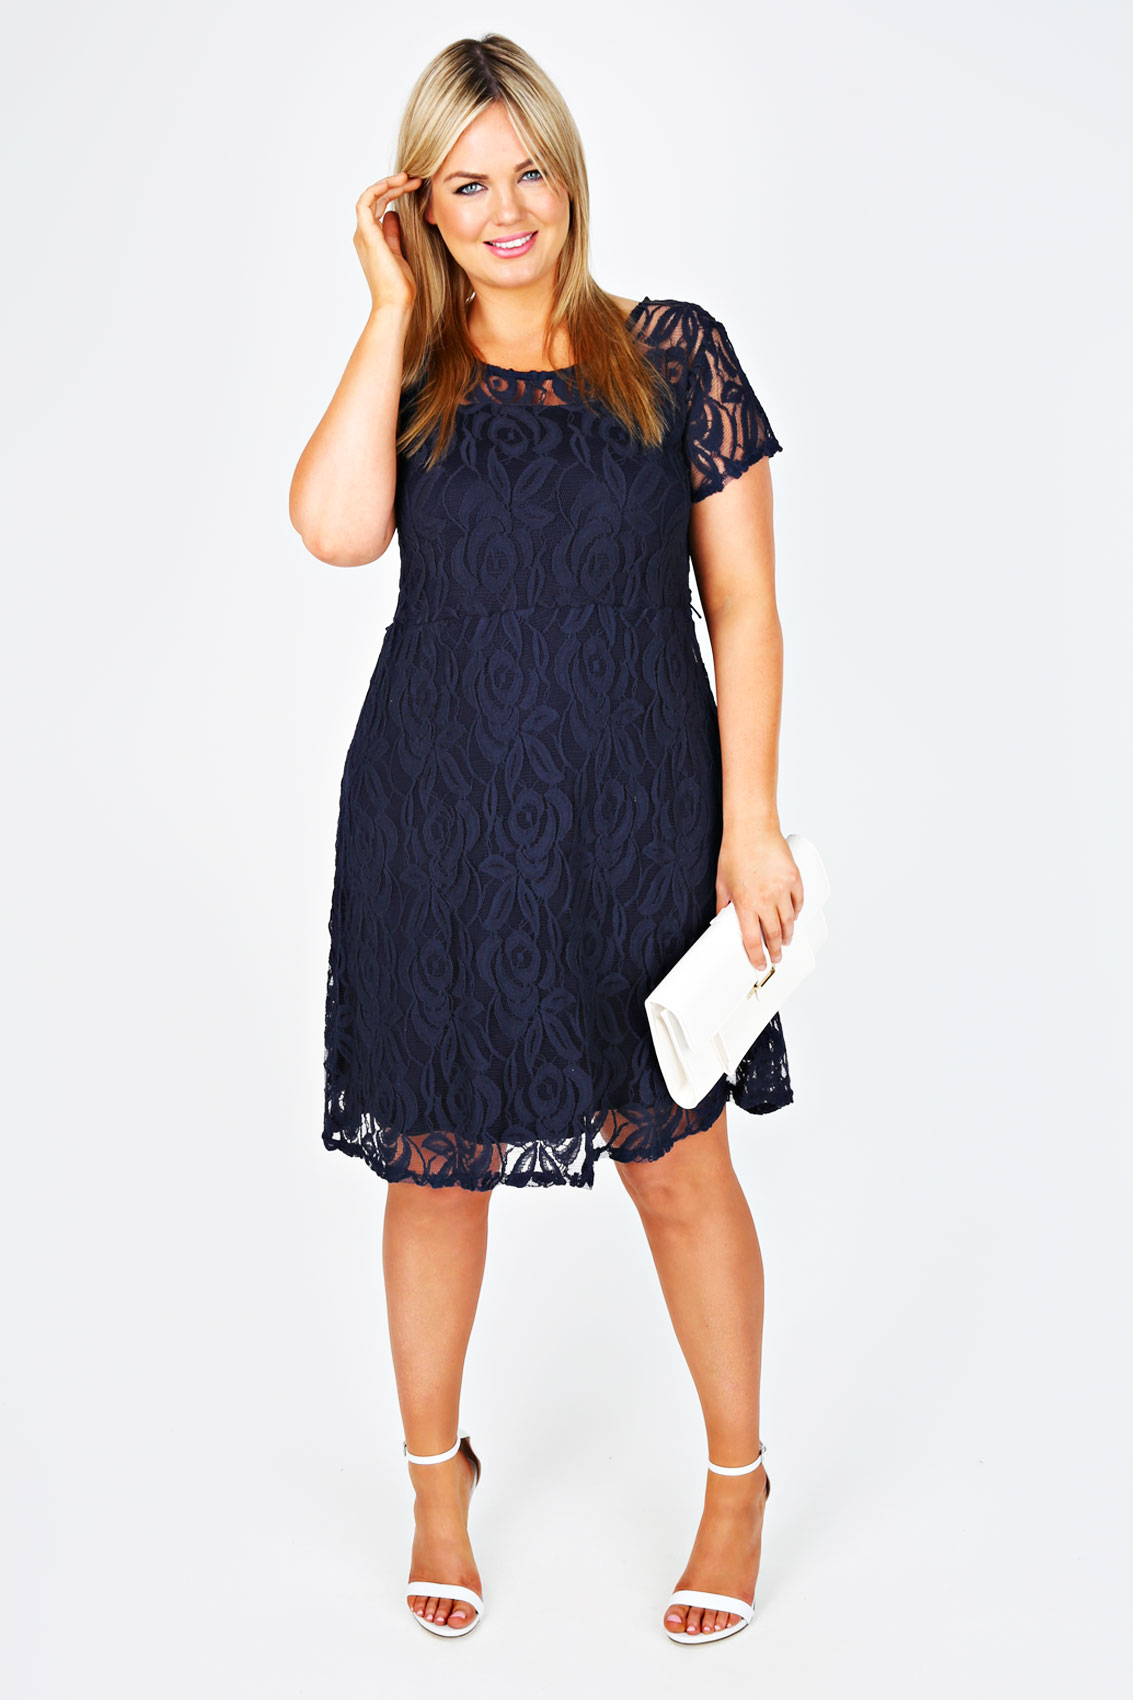 Plus Size Navy Lace Dress – Fashion dresses